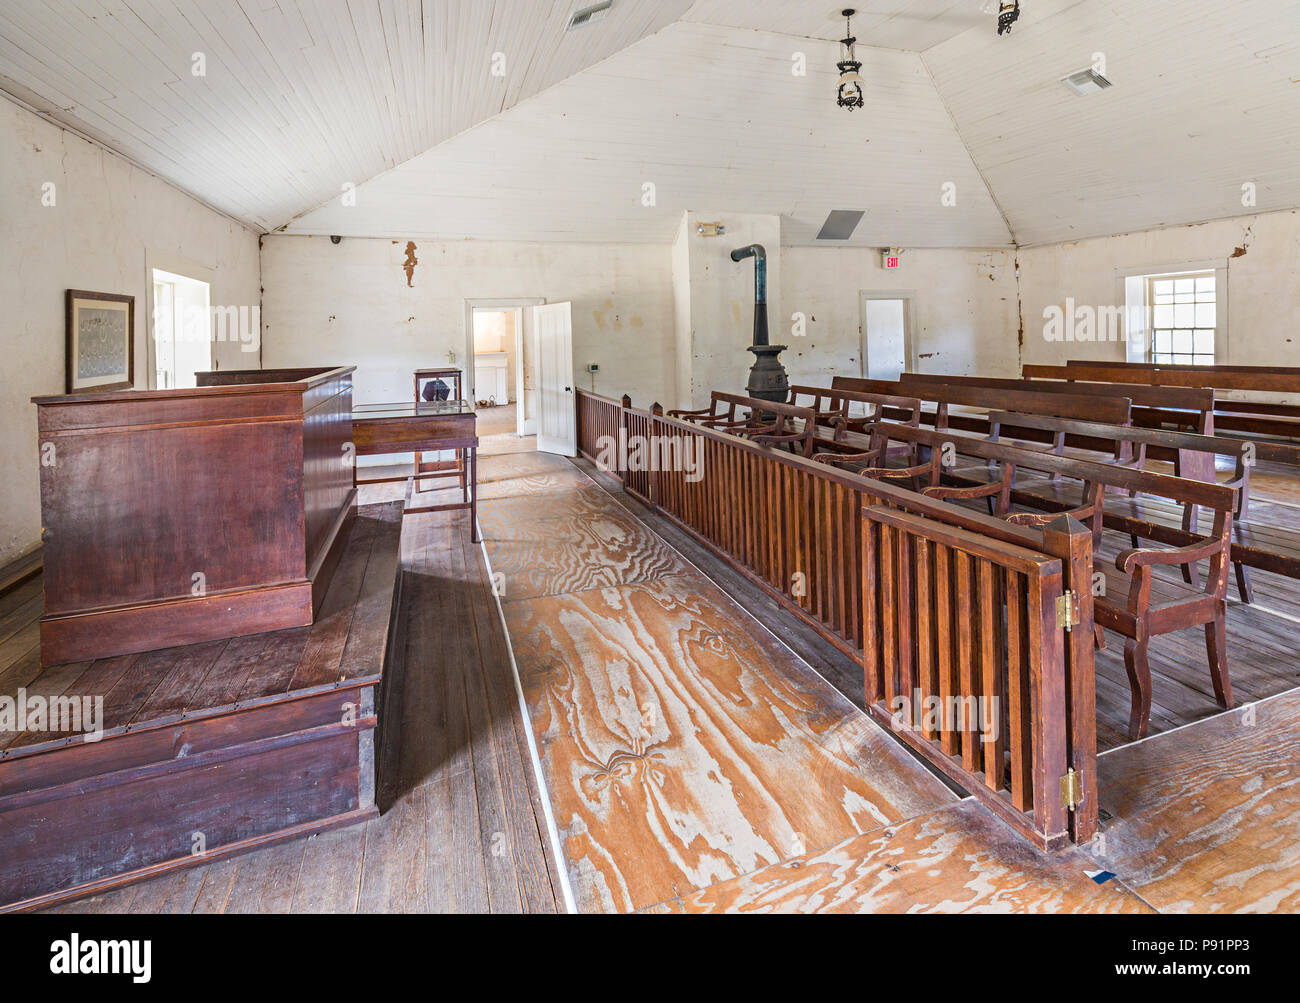 Courtroom where Billy the Kid was tried, Lincoln, New Mexico, USA - Stock Image